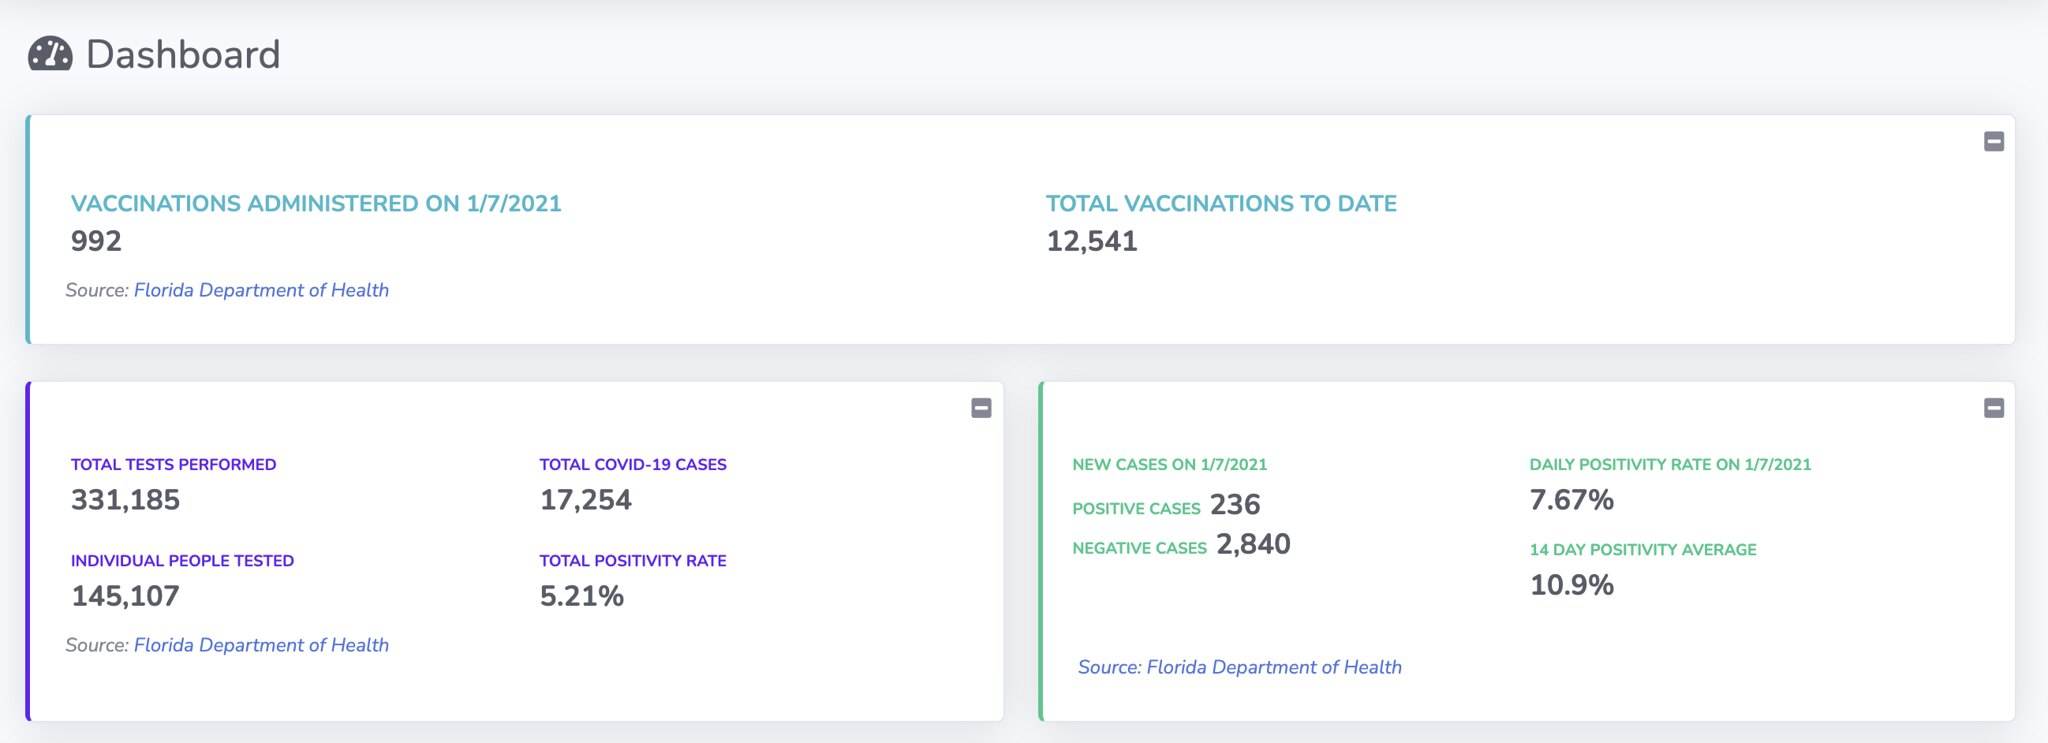 vaccination dashboard